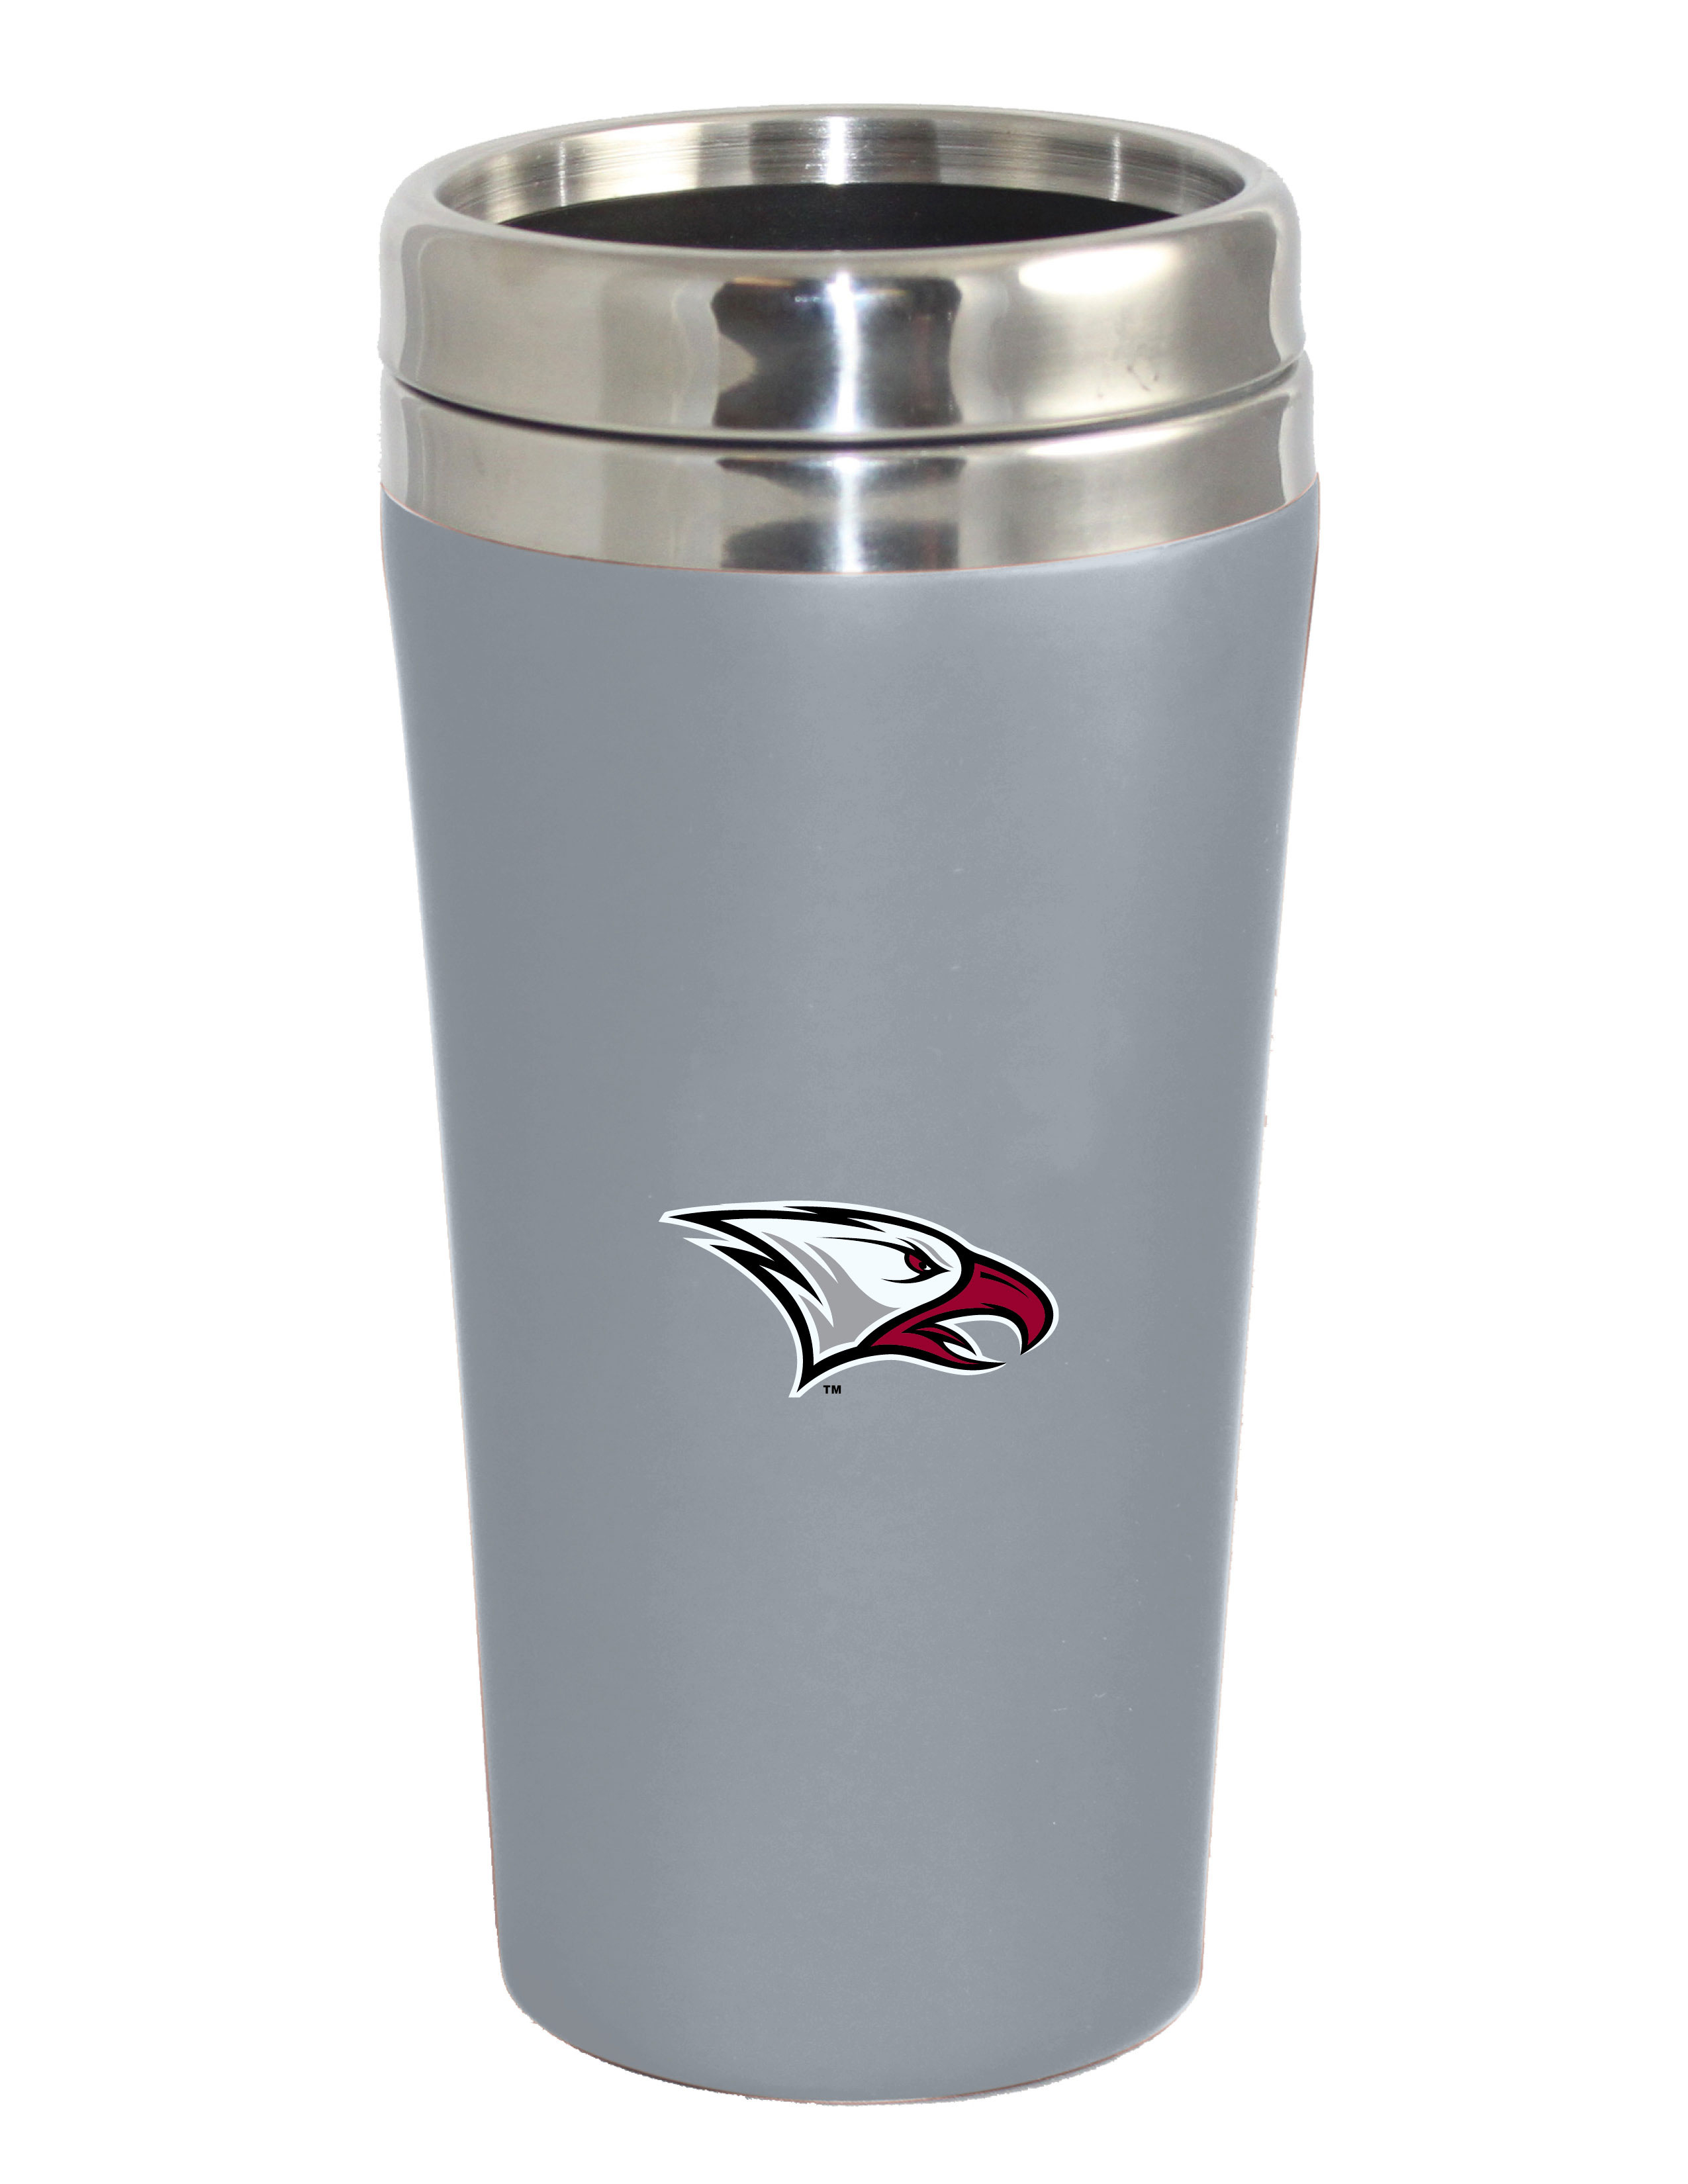 The Fanatic Group North Carolina Double Walled Soft Touch Tumbler Silver Design-1